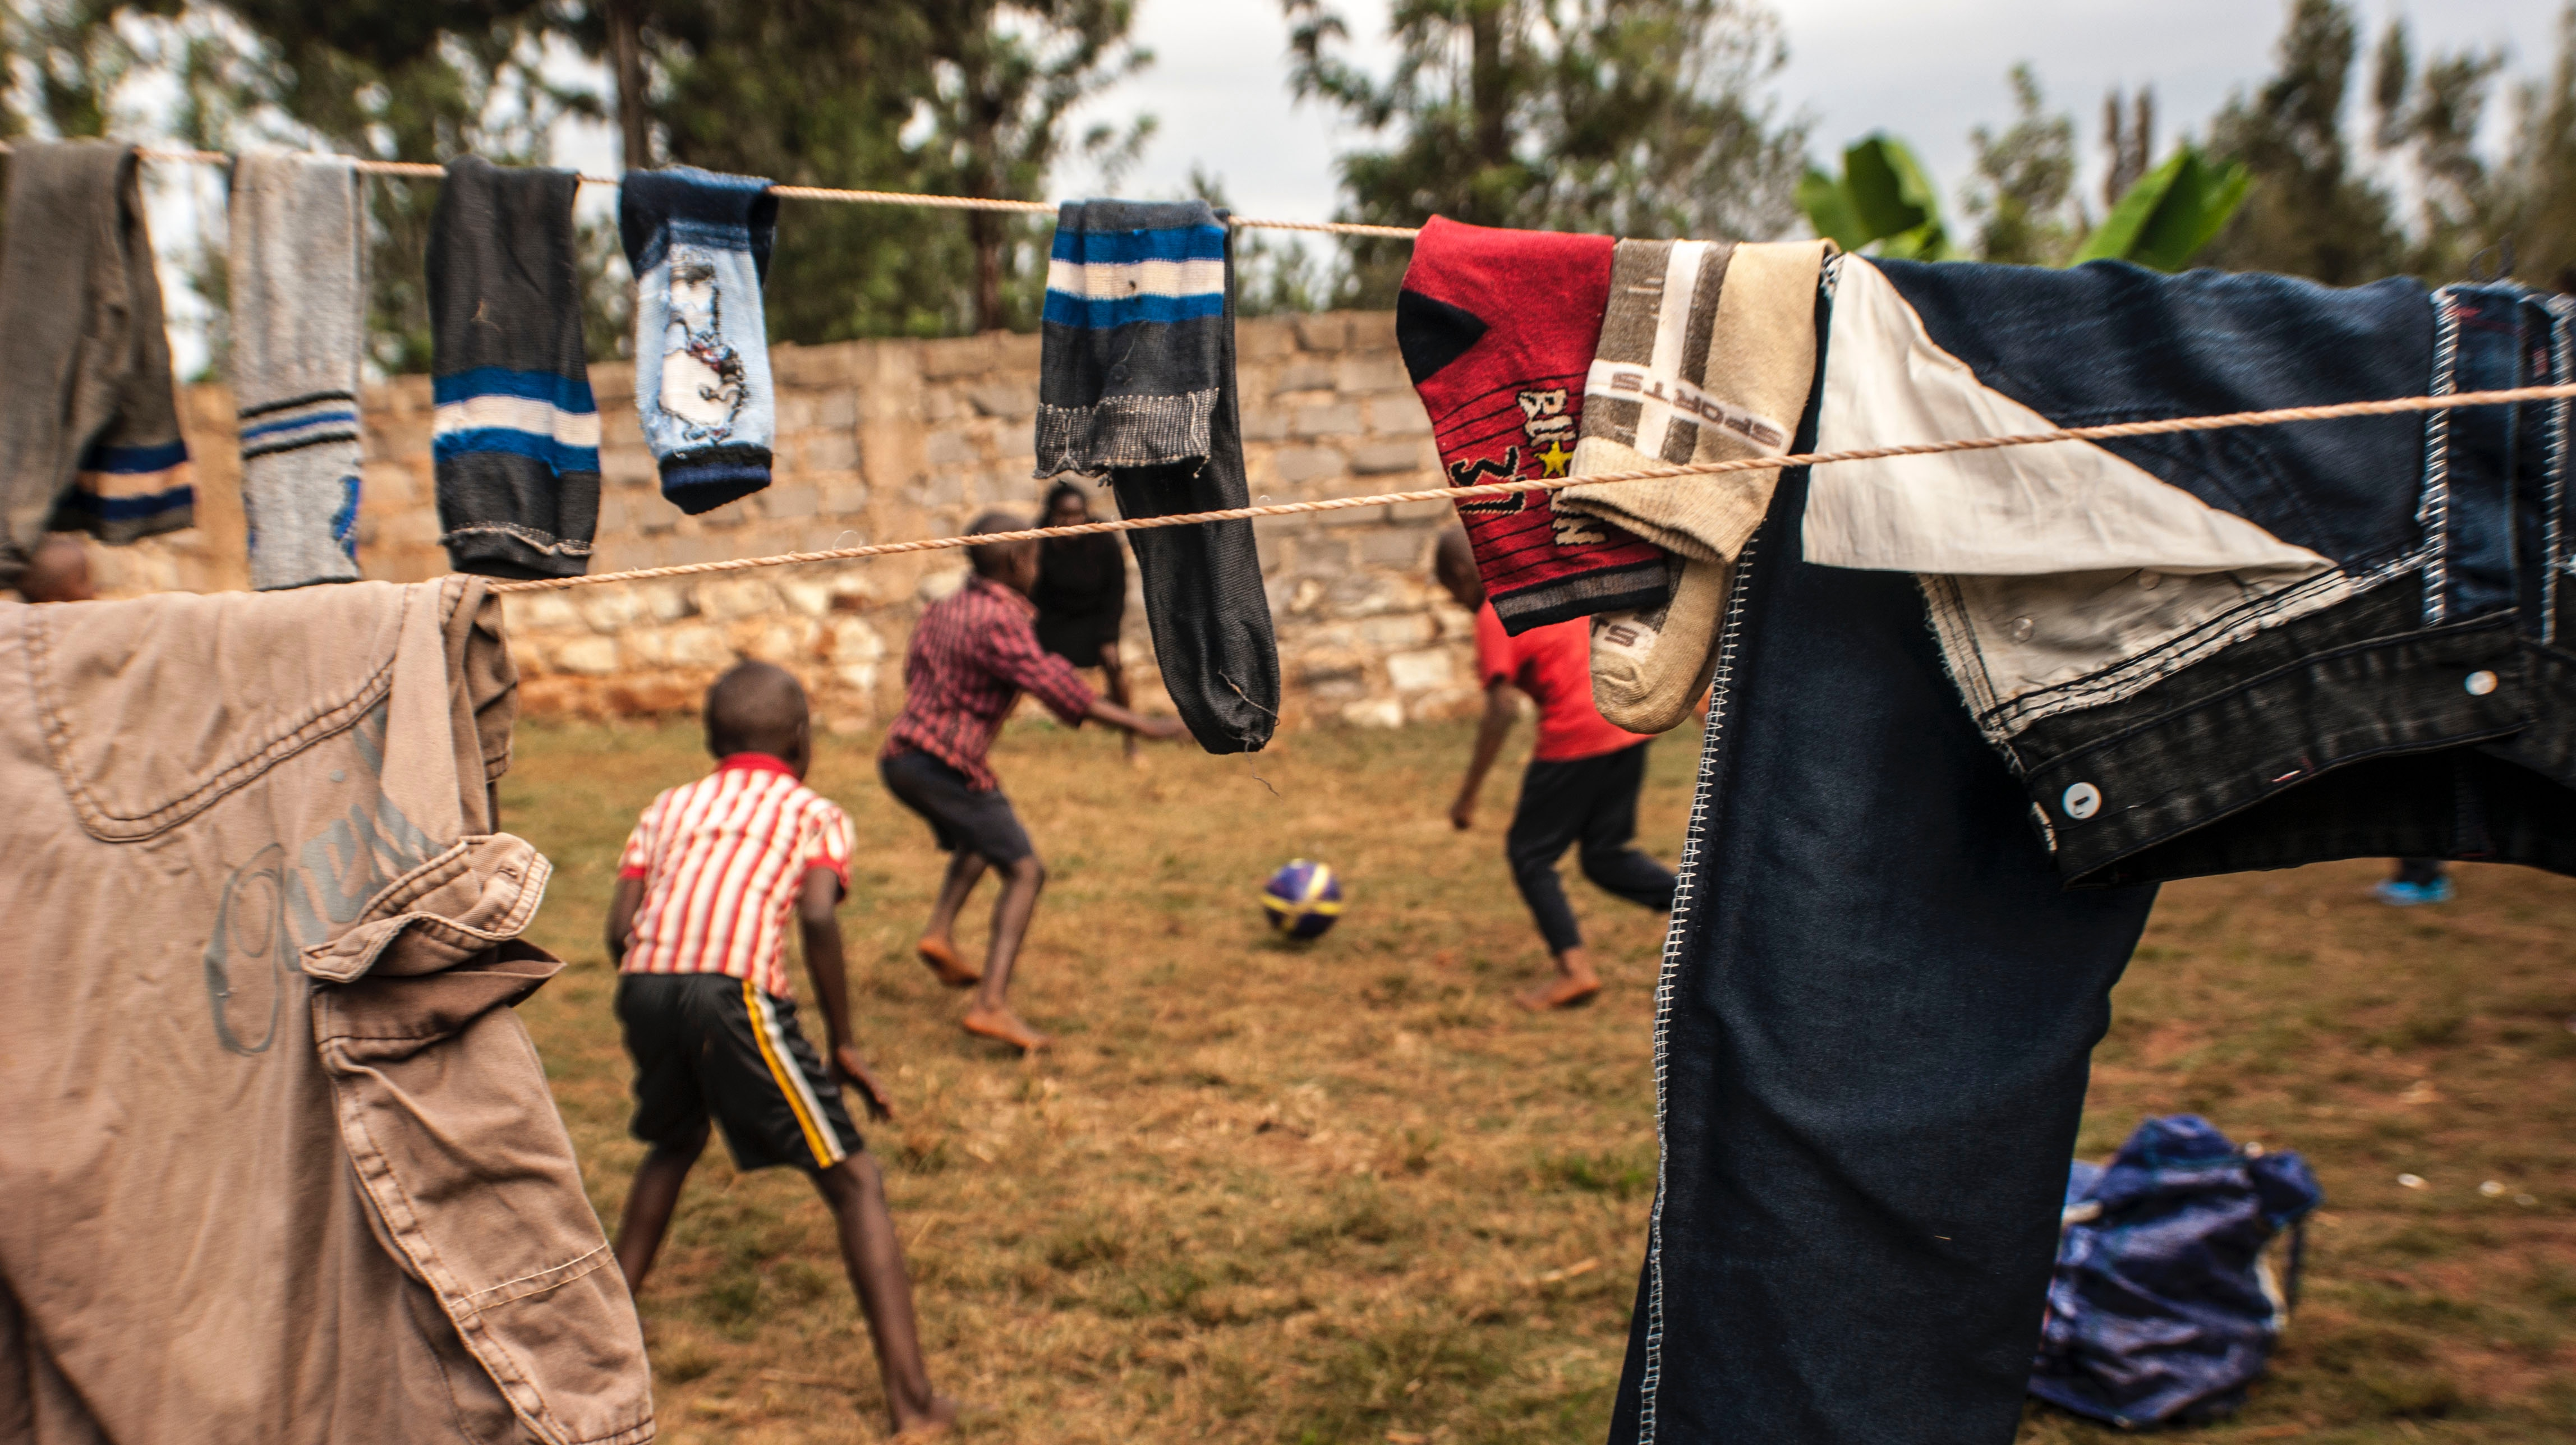 CHILDREN, AFRICA, FOOTBALL